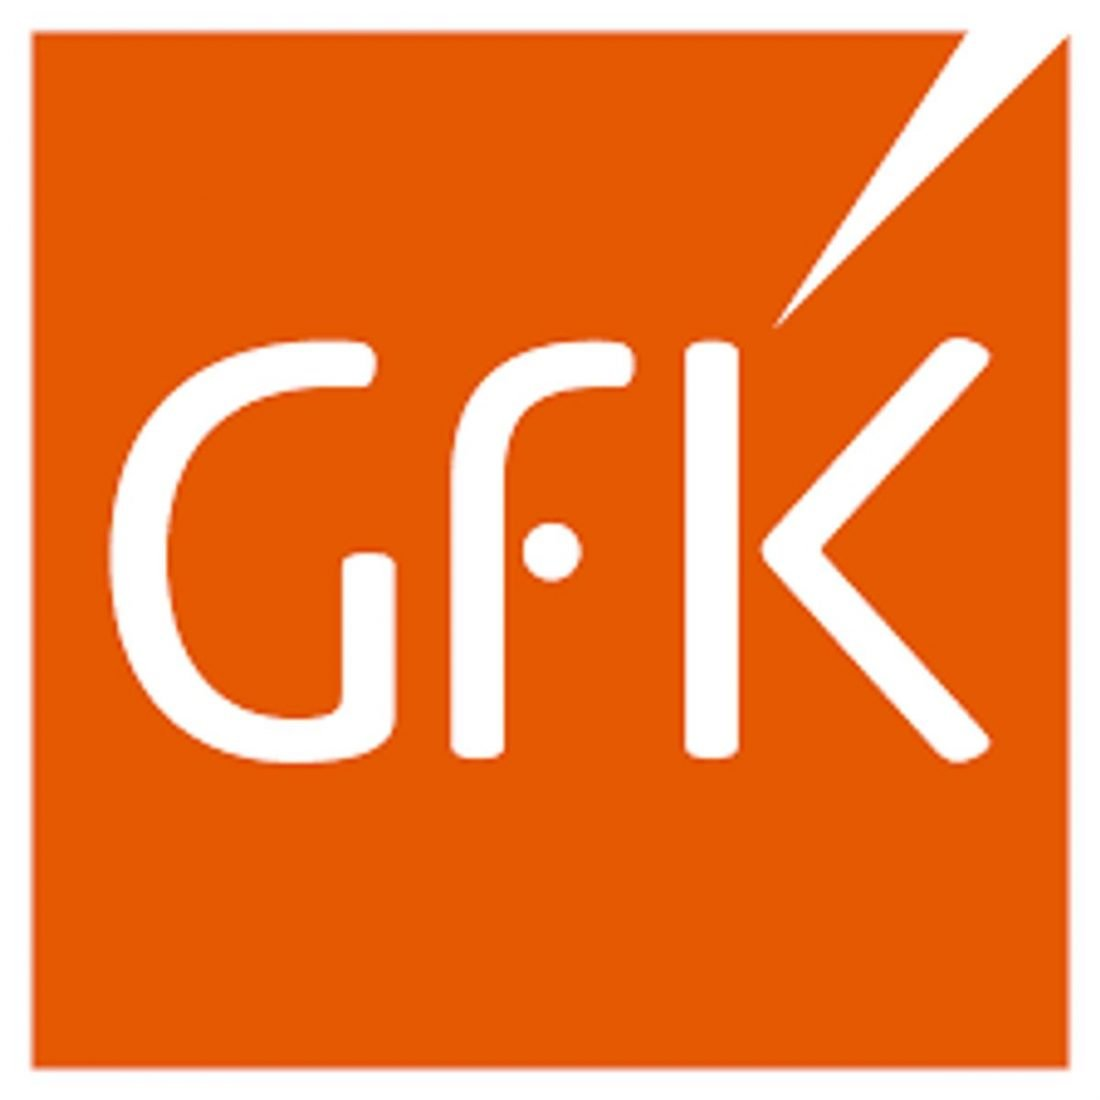 Logo of the German market research firm Gfk. (From Logonoid.com)